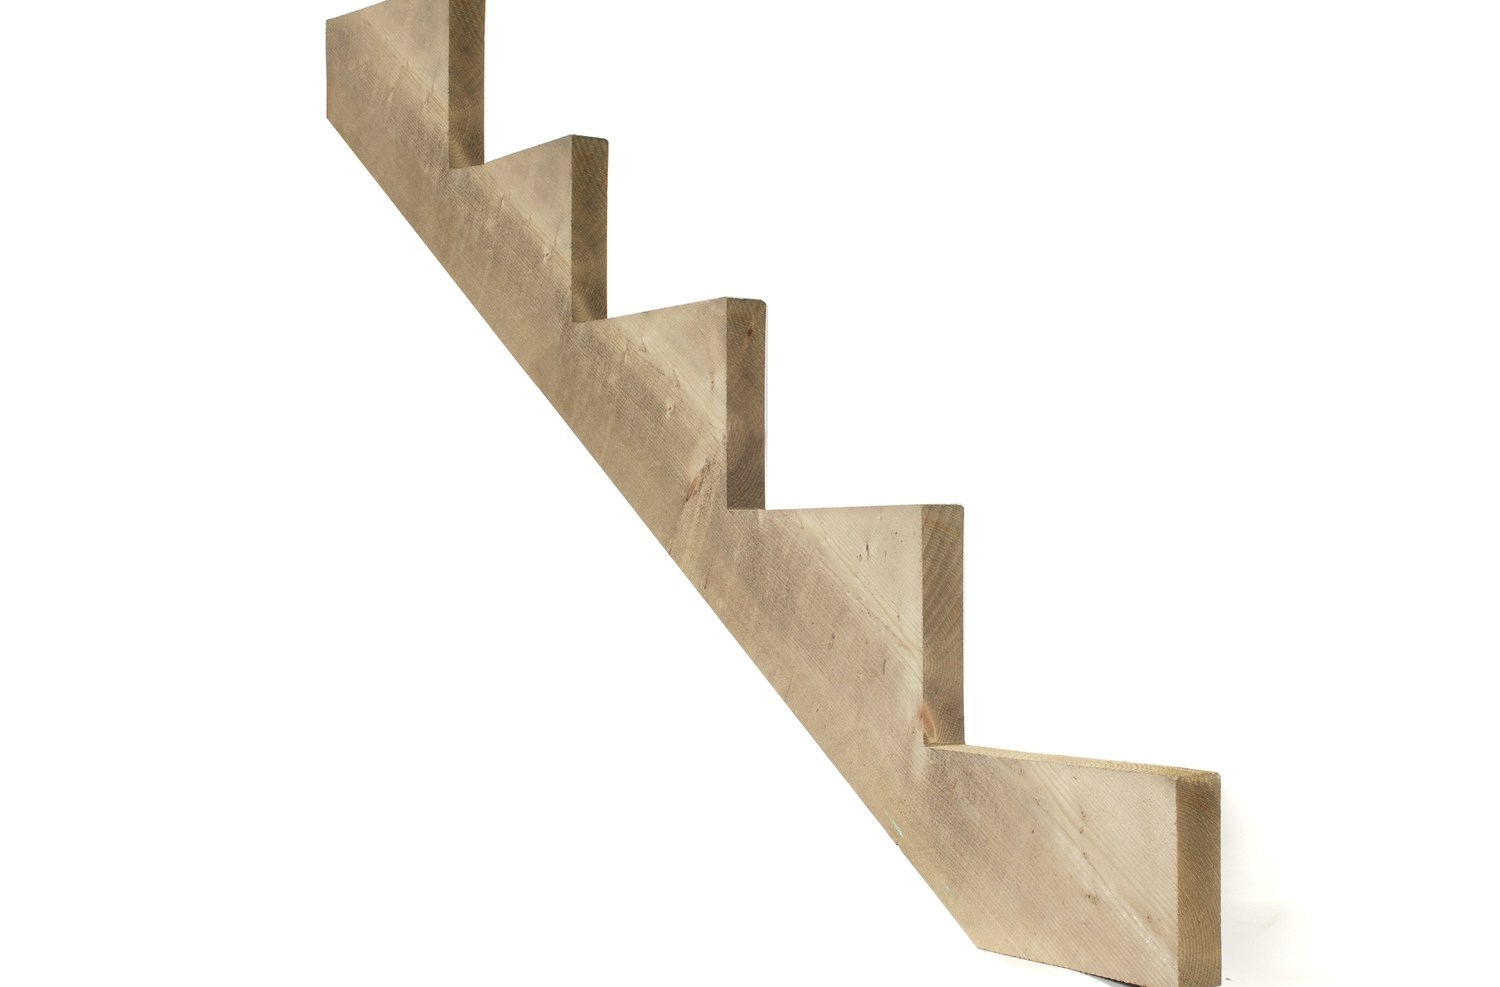 Stair Treads Ace Hardware | Pressure Treated Stair Treads | Live Edge | Outside | Picture Frame | Step | Unsafe